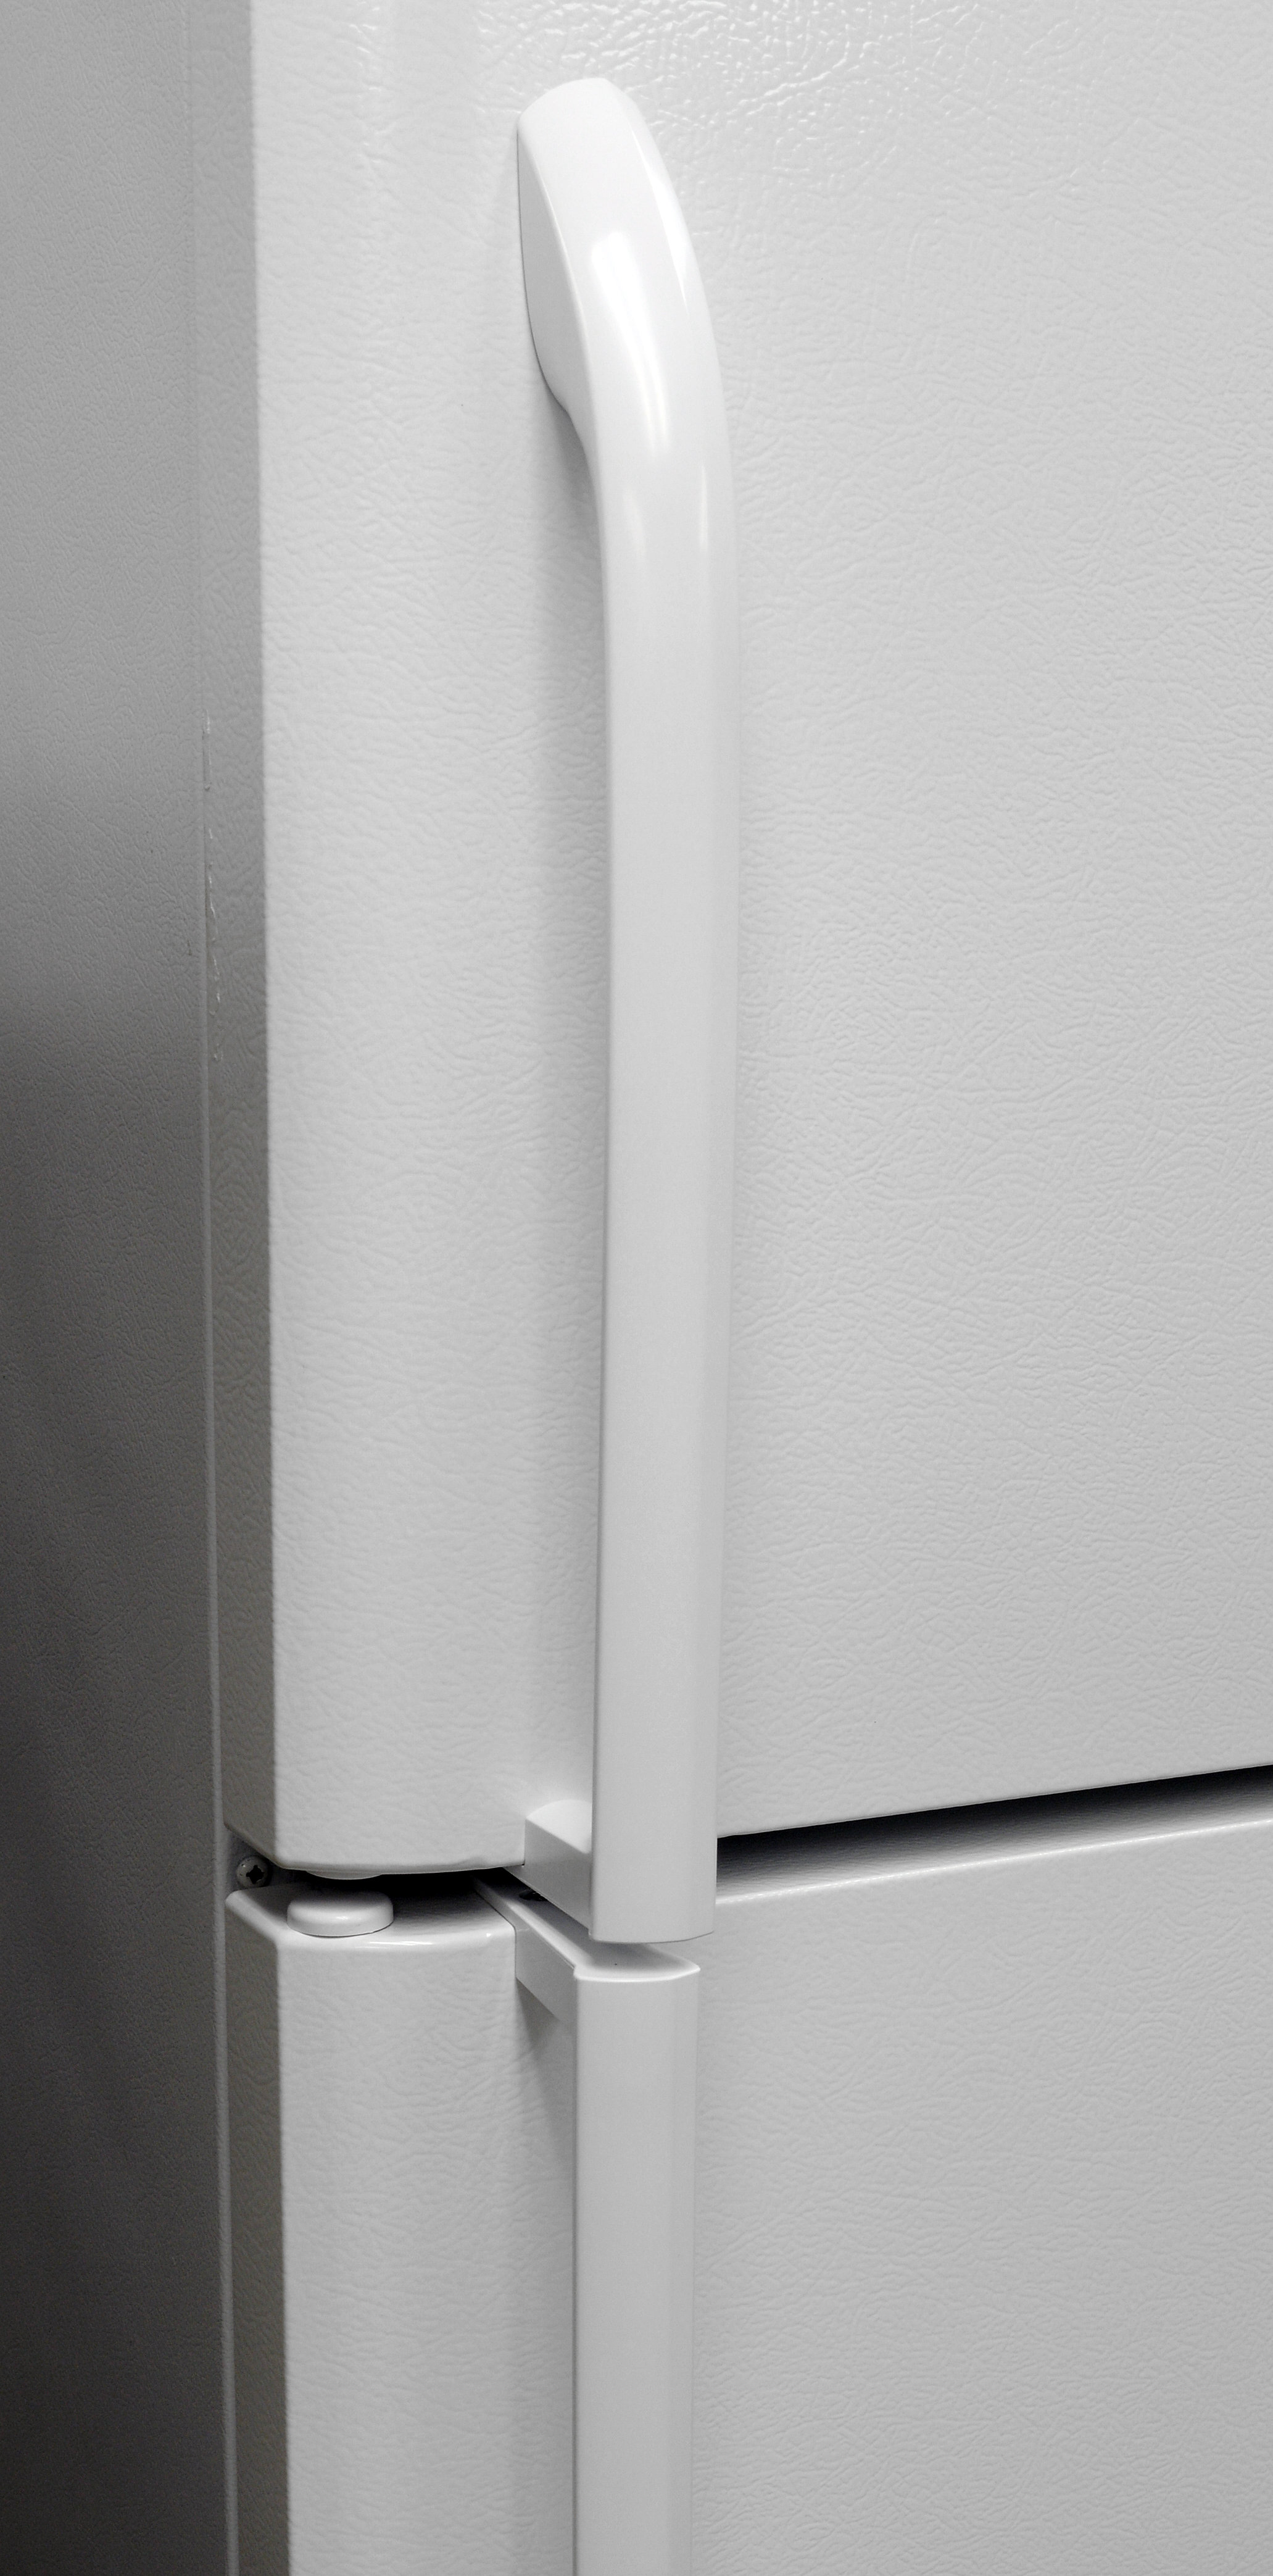 The edges of the Frigidaire FFTR1814QW's handles that sit against the fridge doors weren't perfectly flush, a sign of budget-grade fit and finish.